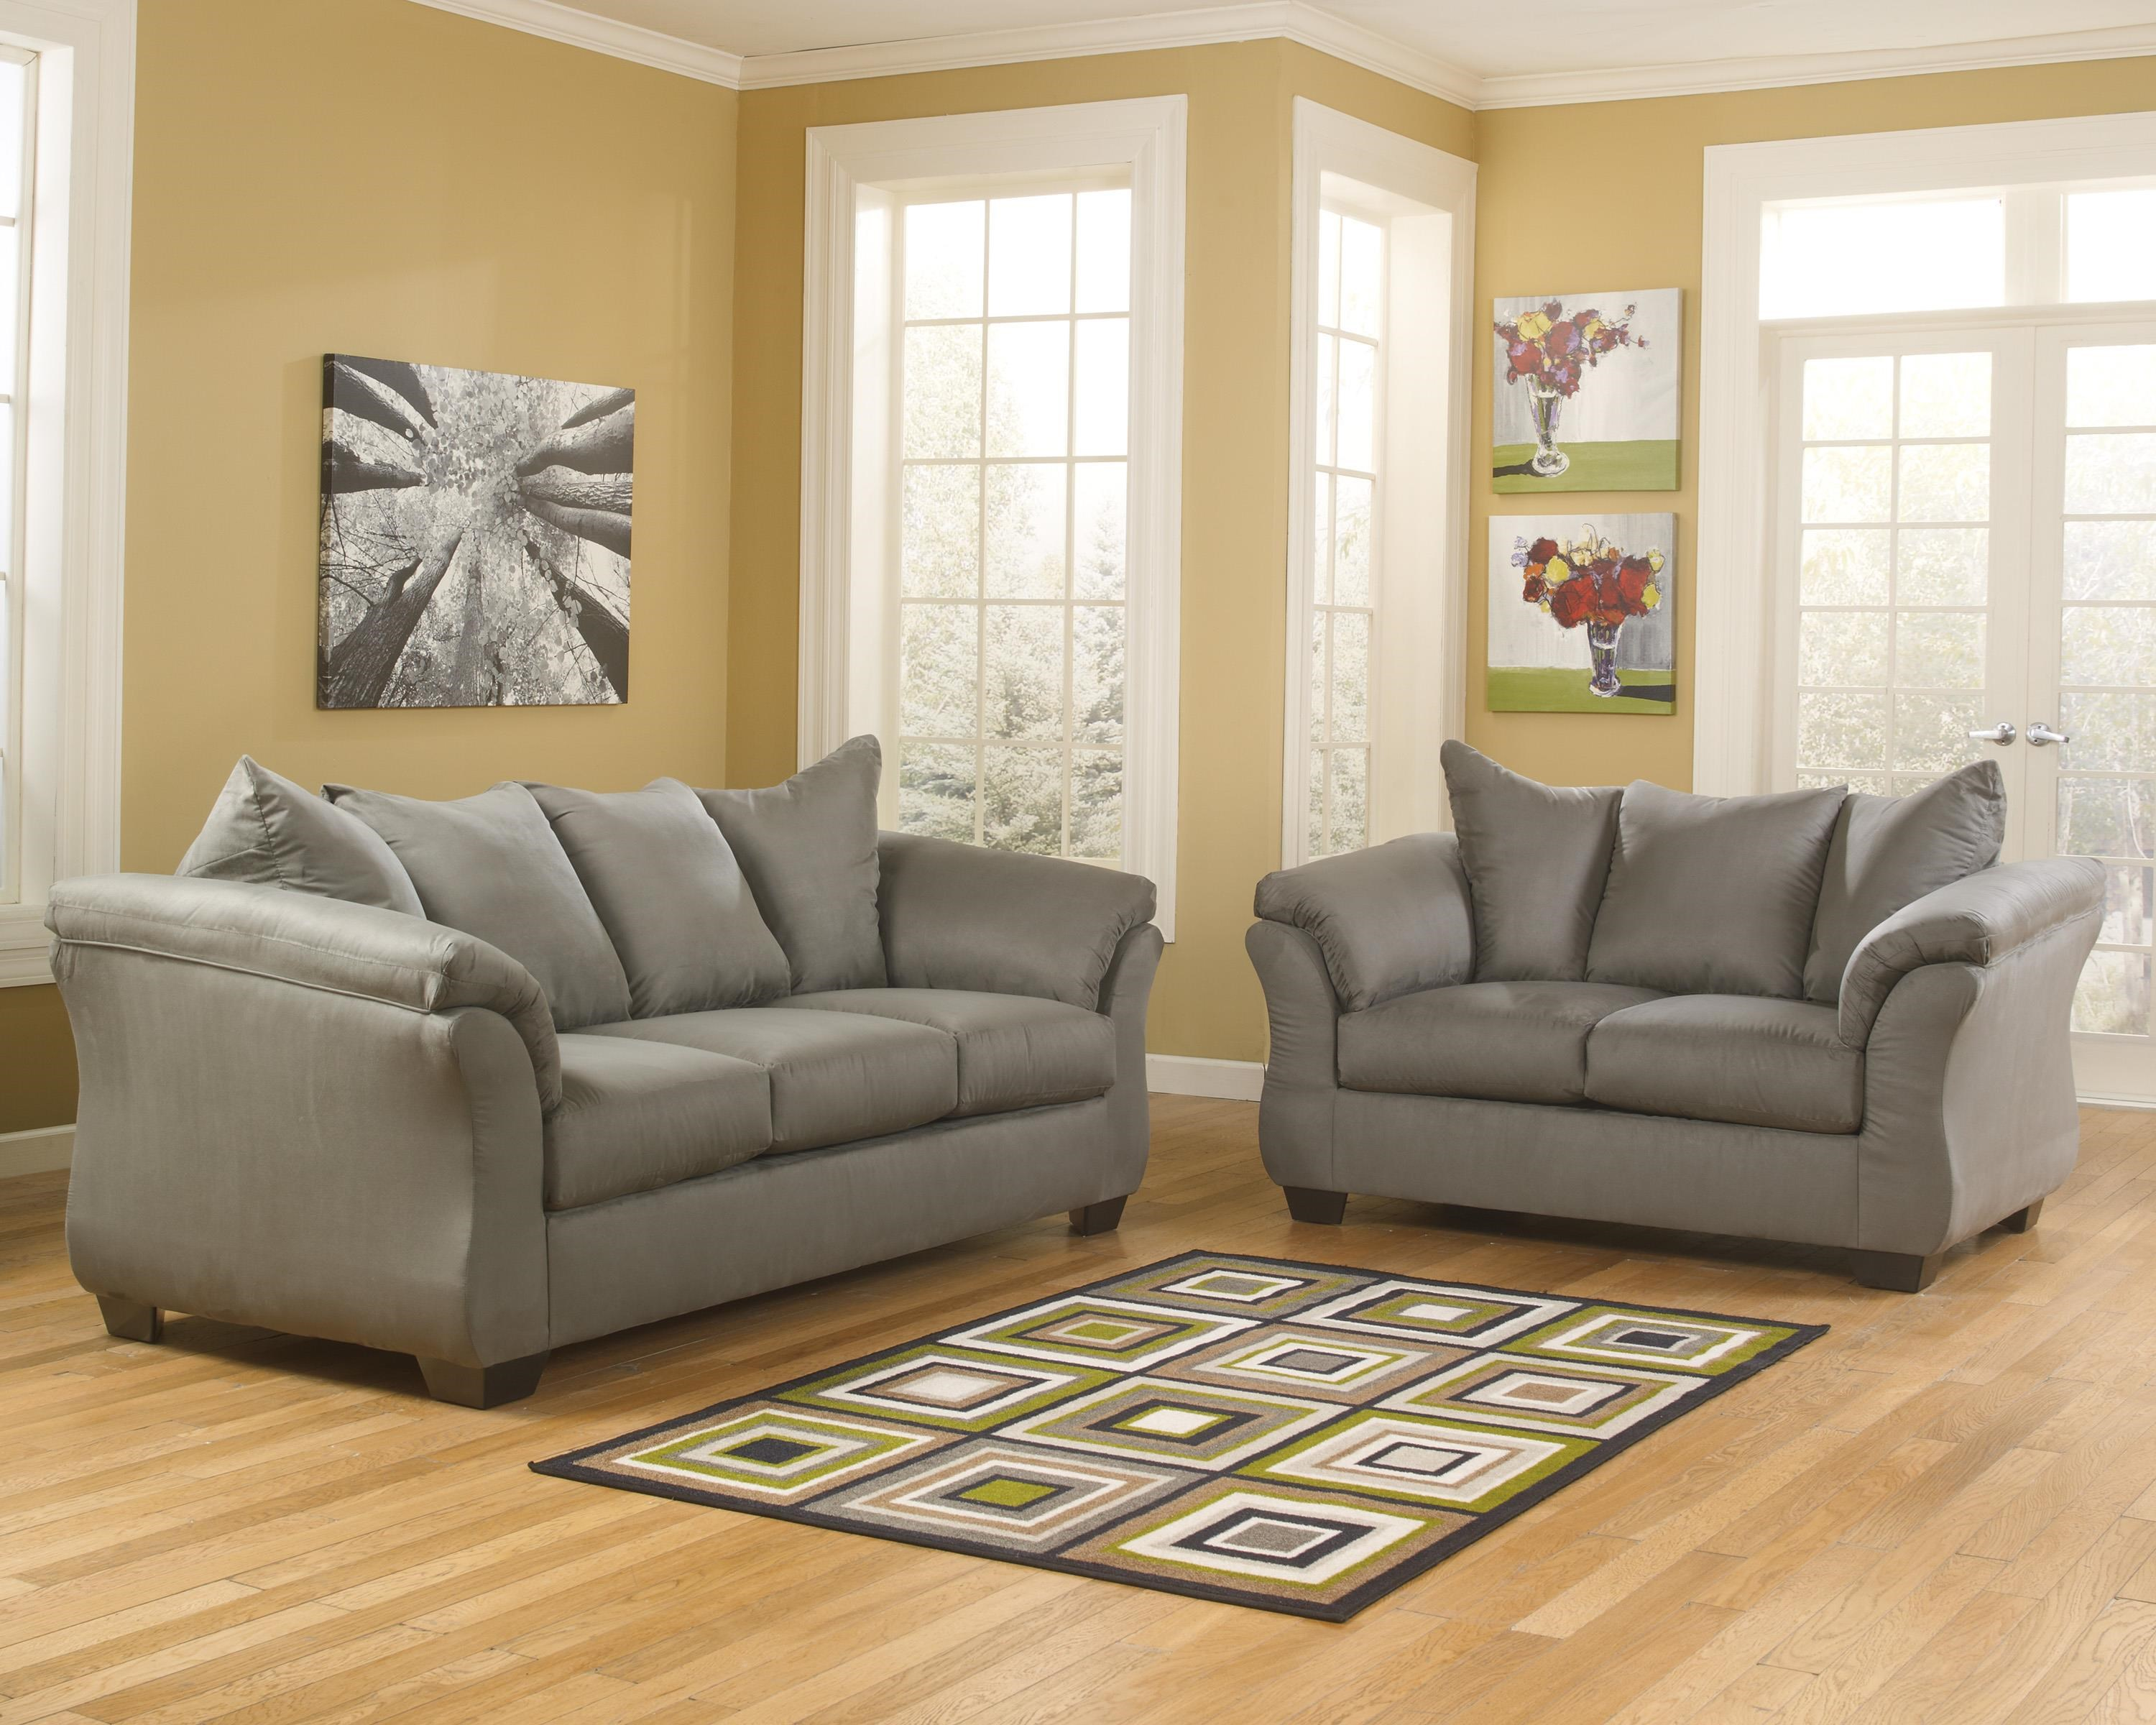 Darcy - Cobblestone Sofa, Loveseat and Chair Set by Signature Design by Ashley at Sam Levitz Furniture